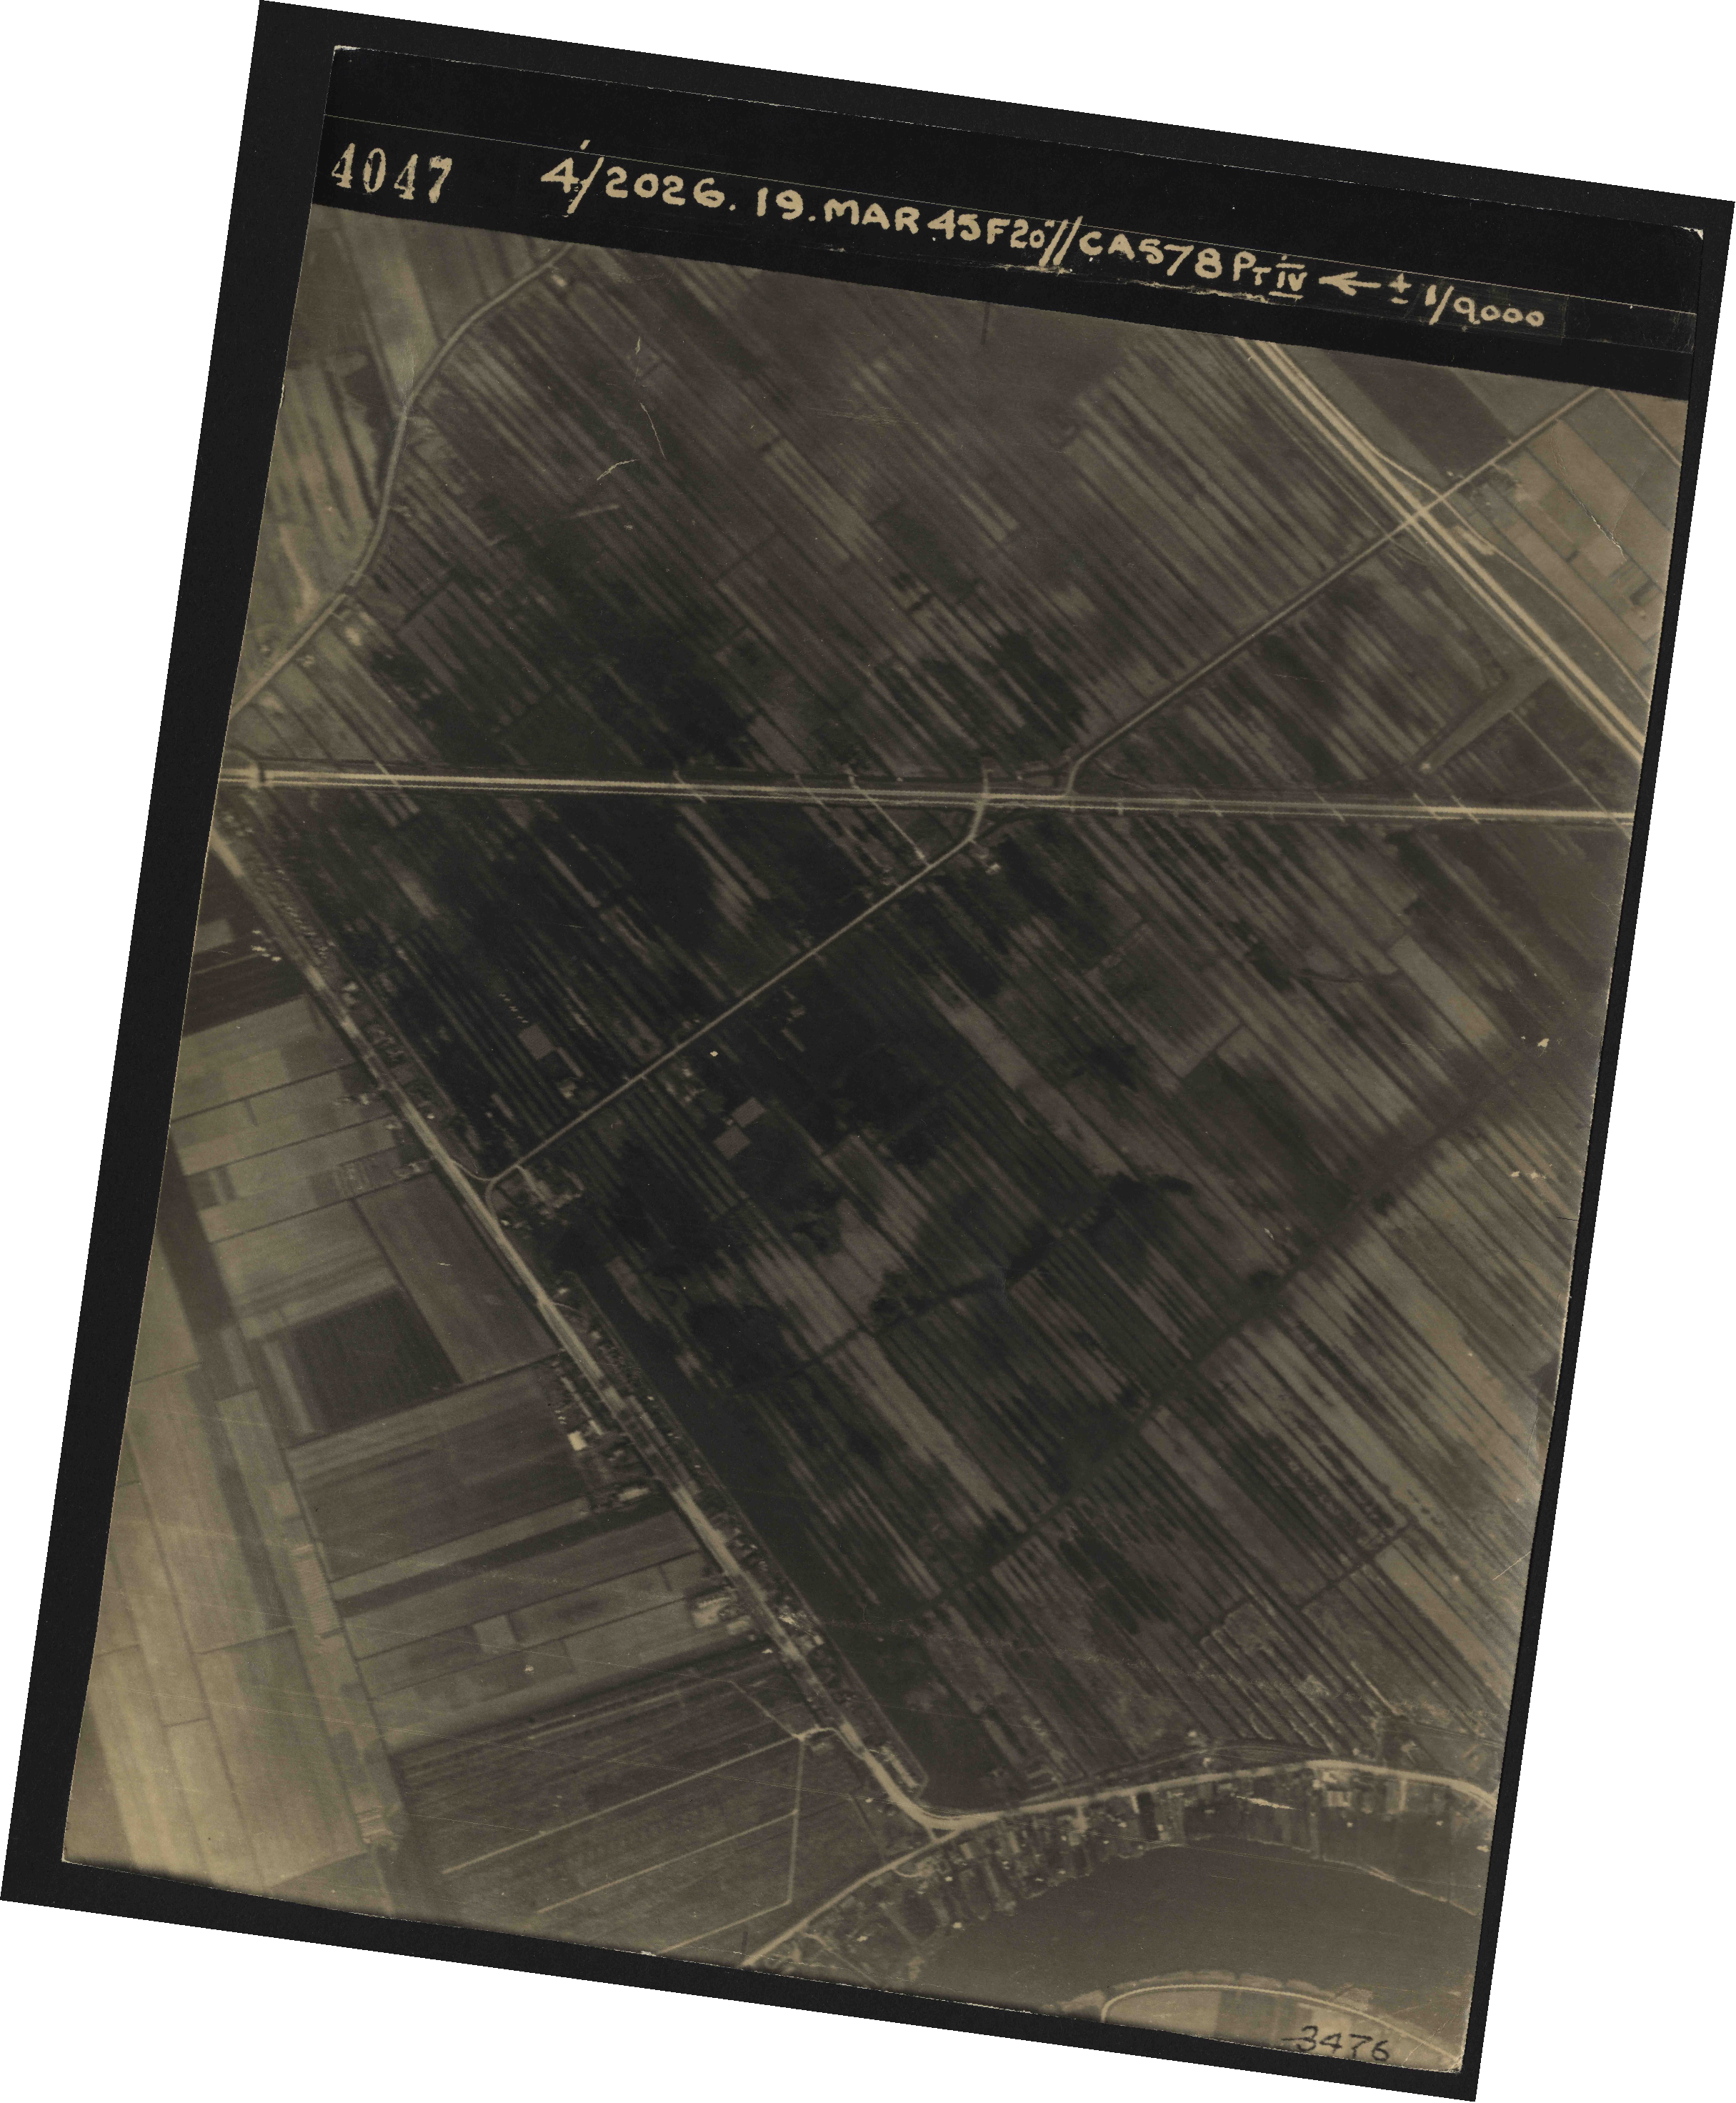 Collection RAF aerial photos 1940-1945 - flight 012, run 02, photo 4047